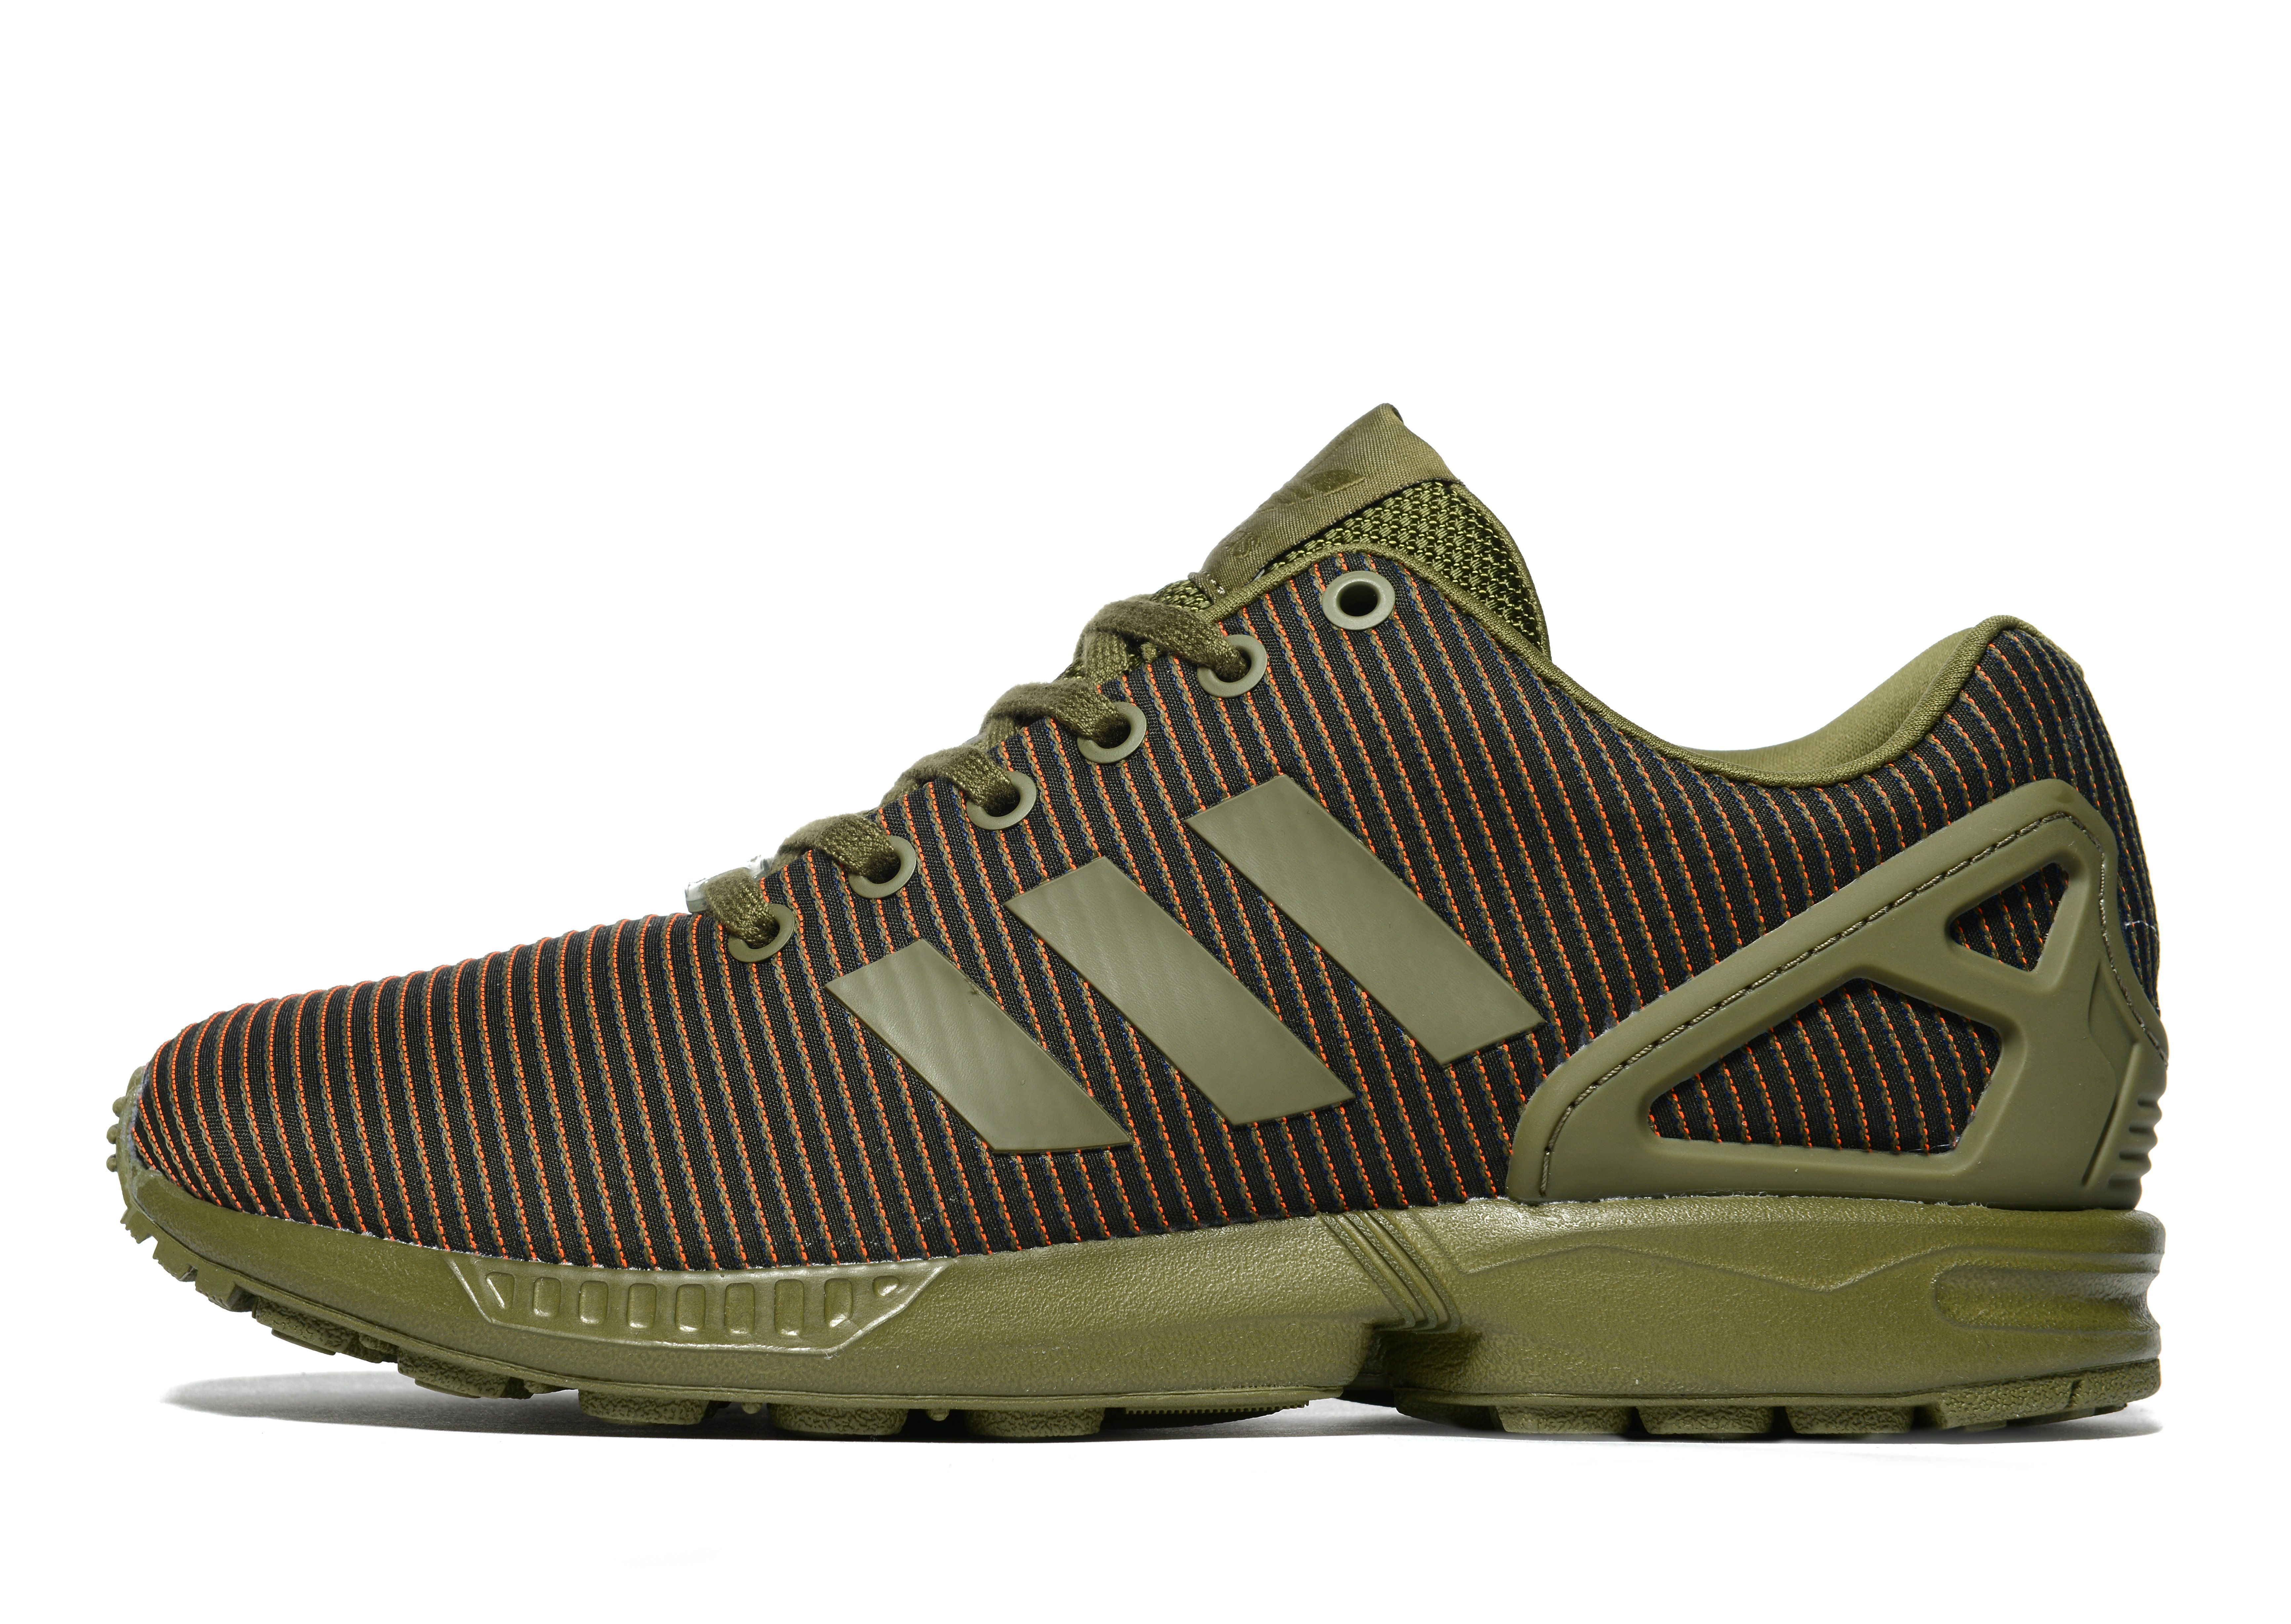 separation shoes 0cde7 c7e3d Adidas Flux Tan wallbank-lfc.co.uk